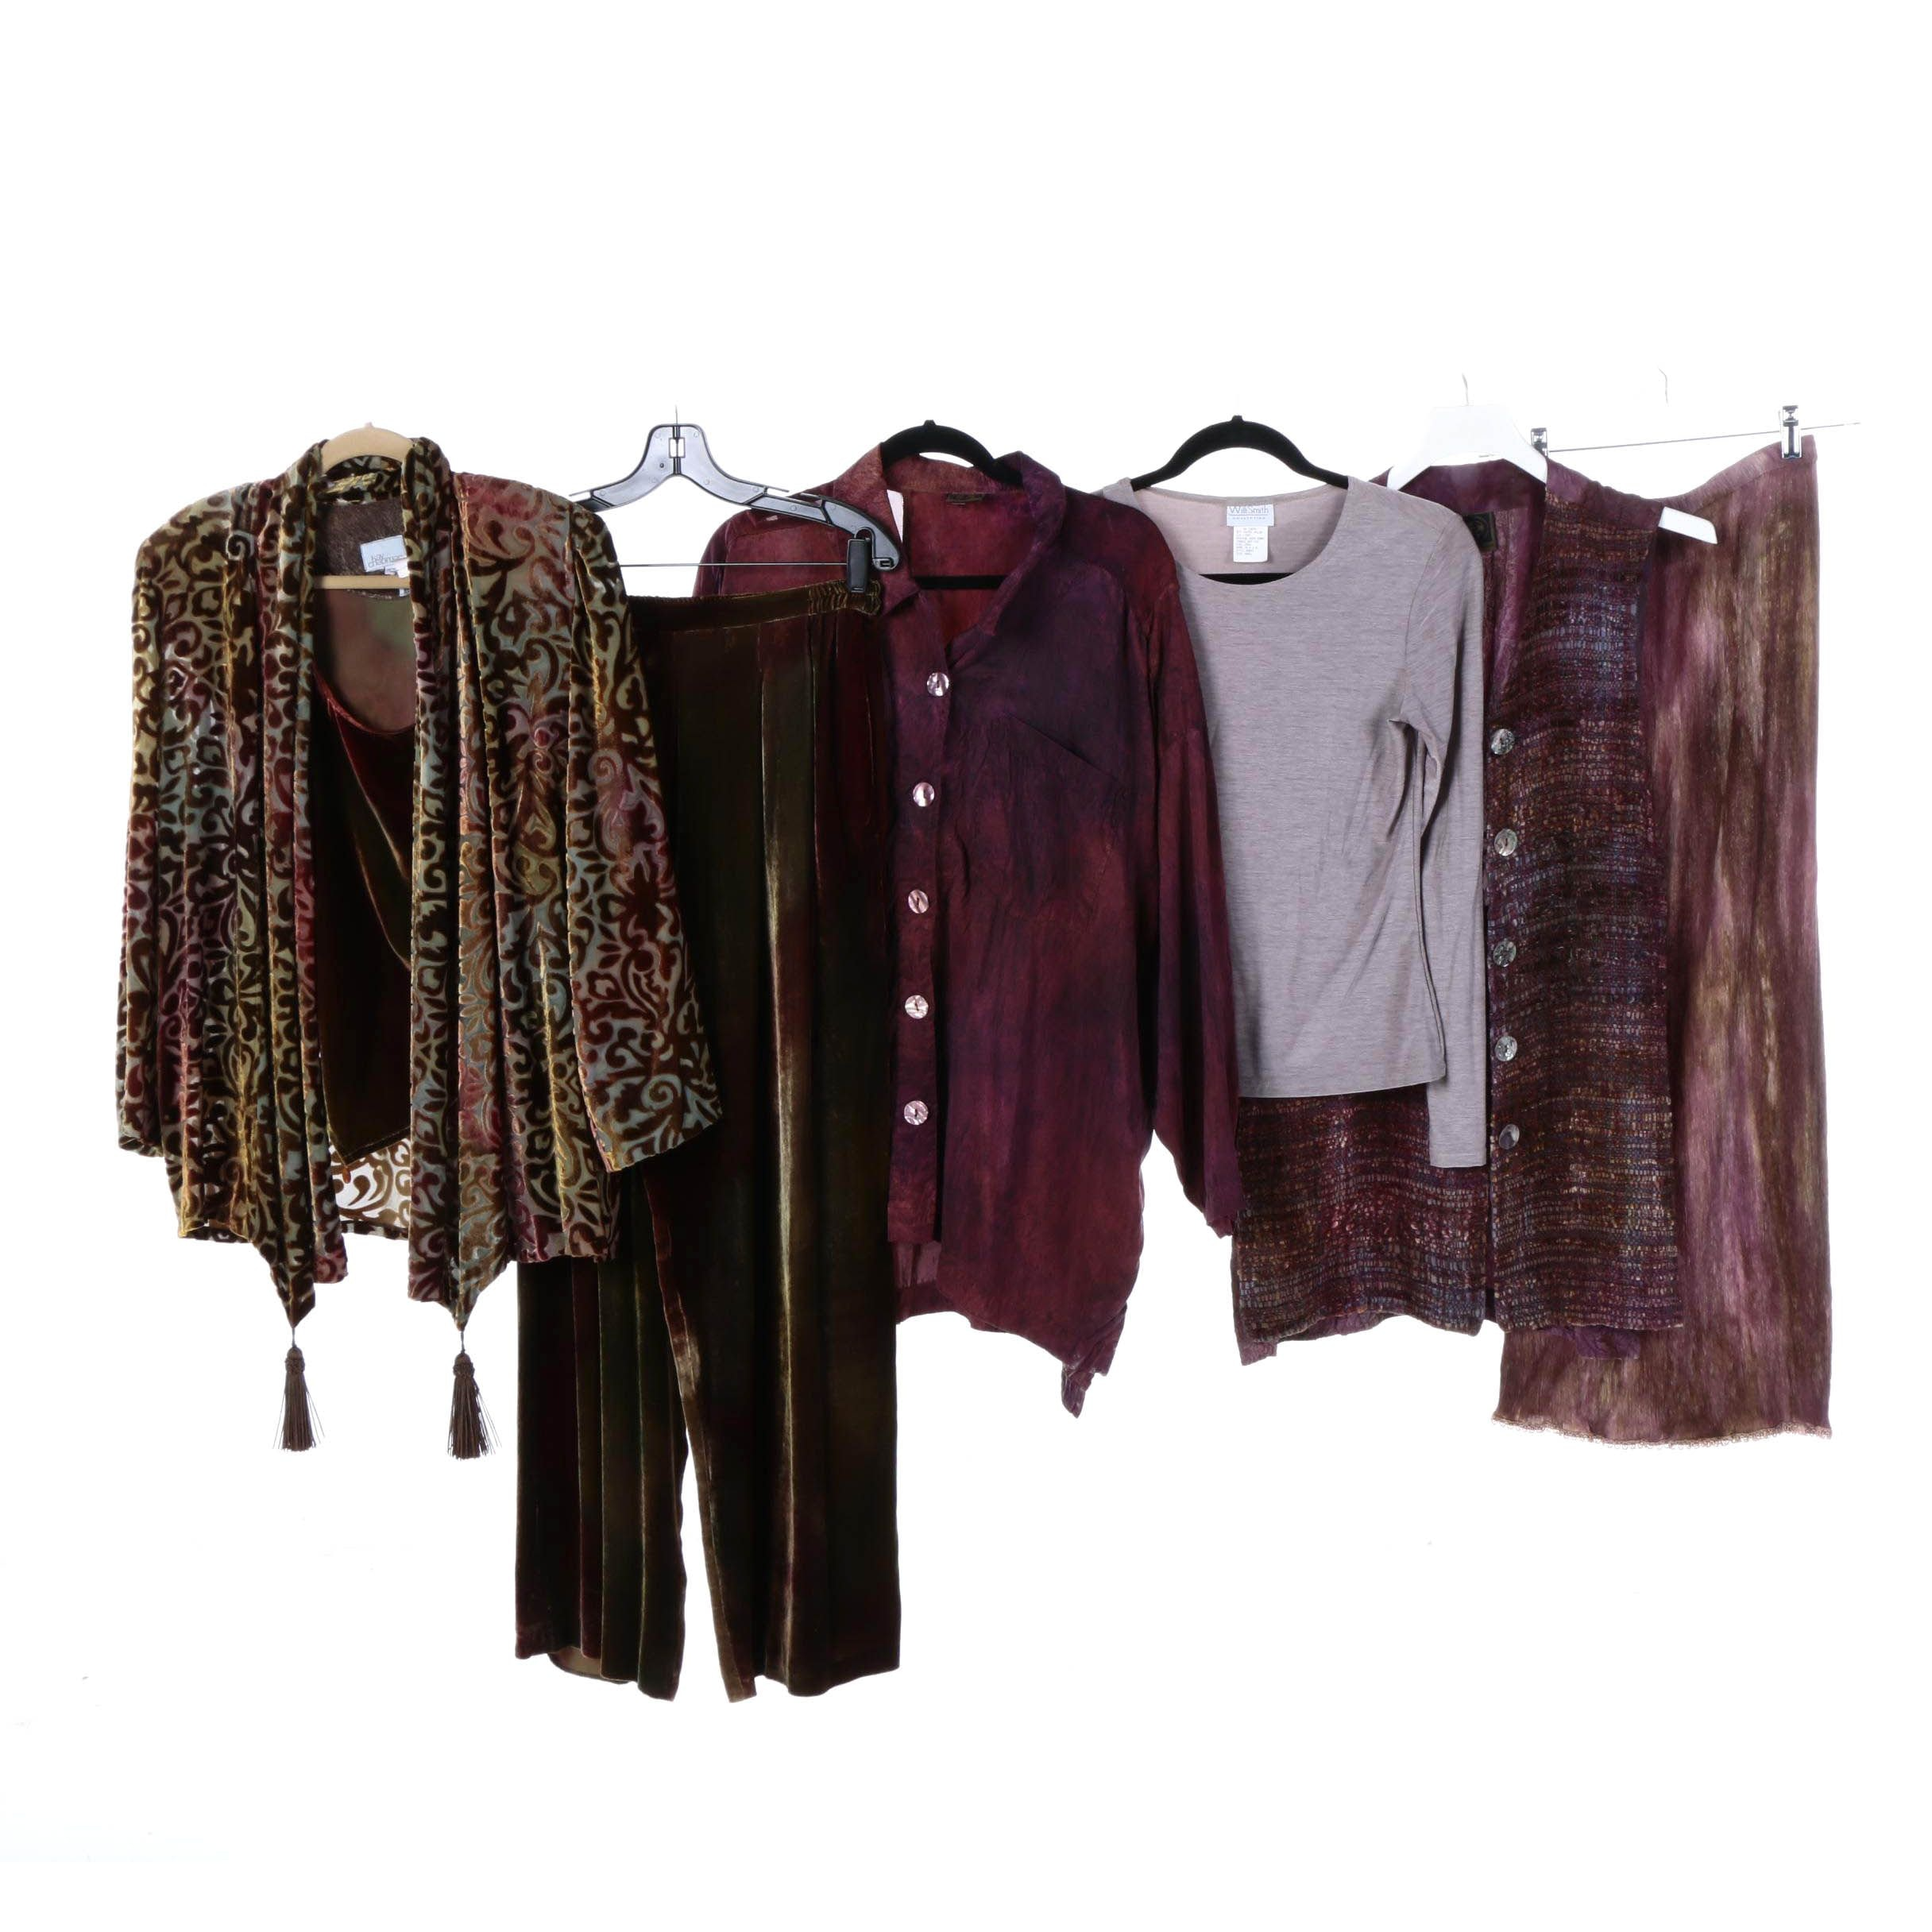 Women's Clothing Including Kay Chapman and Willi Smith